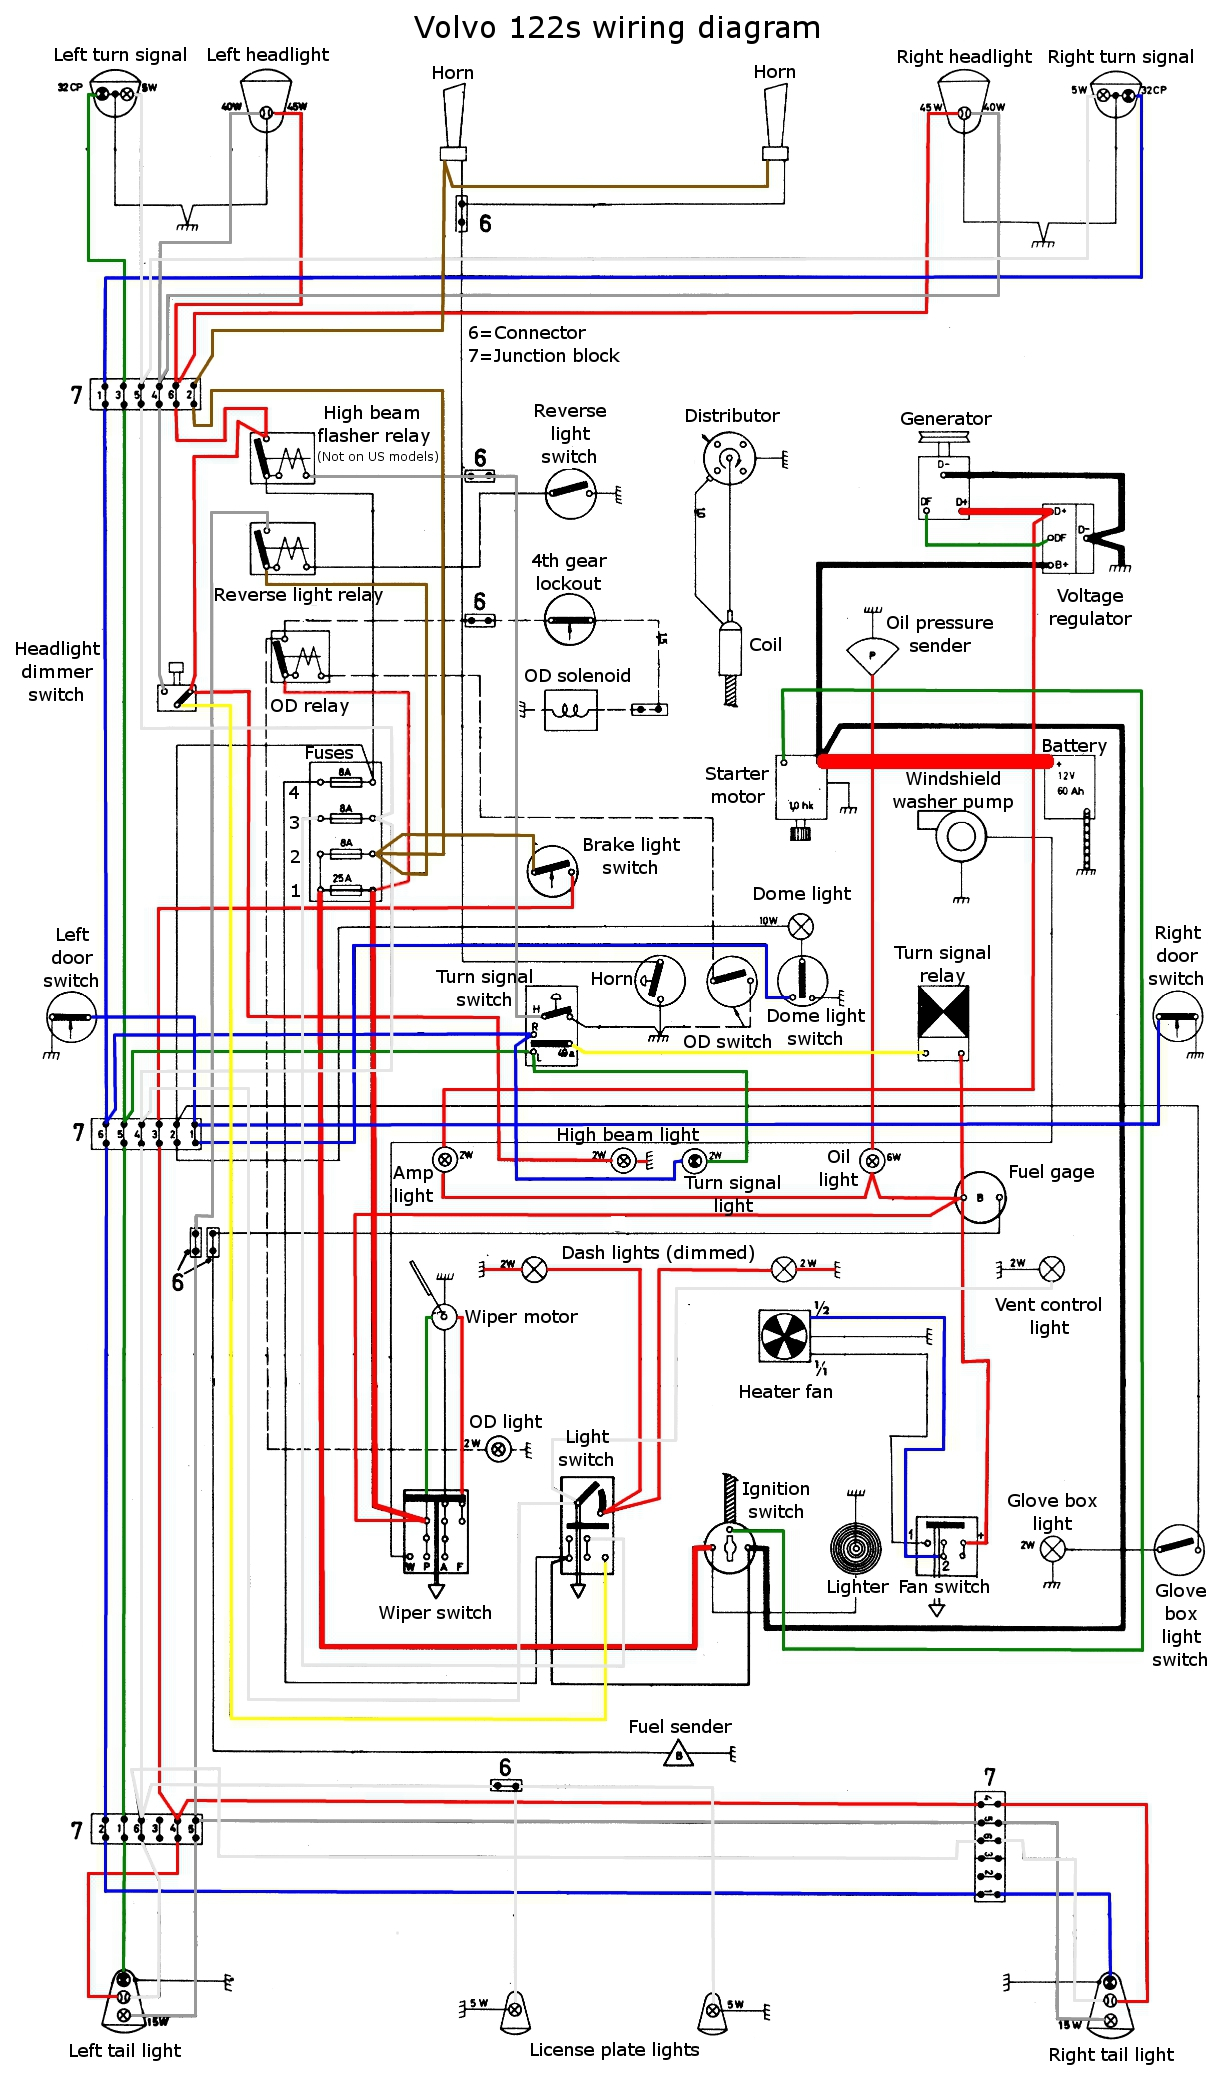 122 wiring diagram color 2005 volvo s40 wiring diagram volvo s40 steering diagram \u2022 wiring  at gsmportal.co